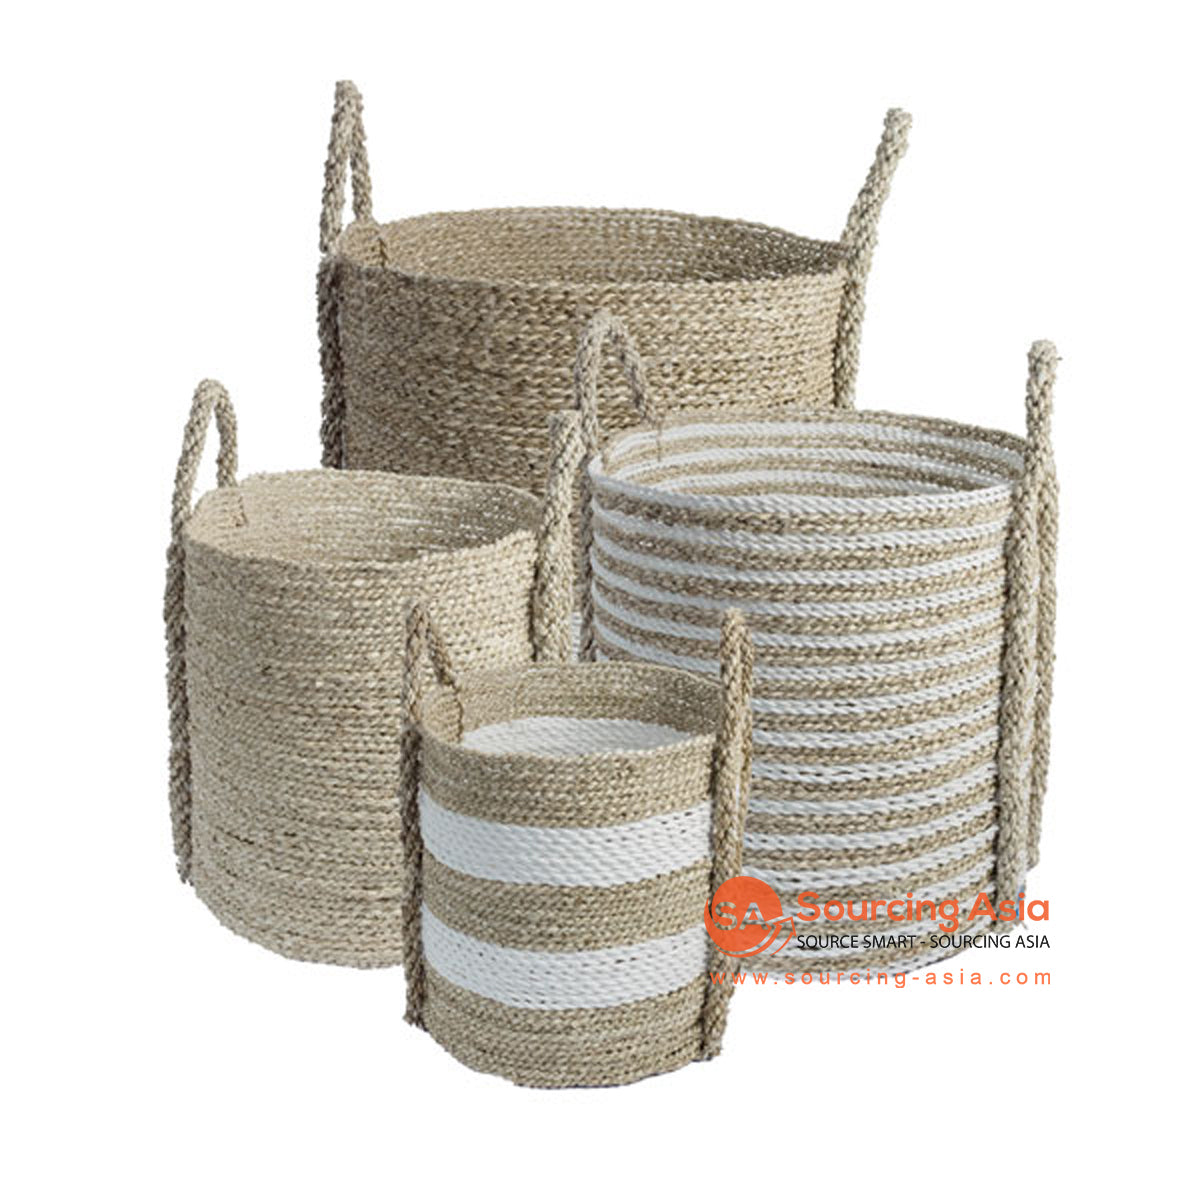 SHL168-7 SET OF FOUR NATURAL AND WHITE SEAGRASS BASKETS